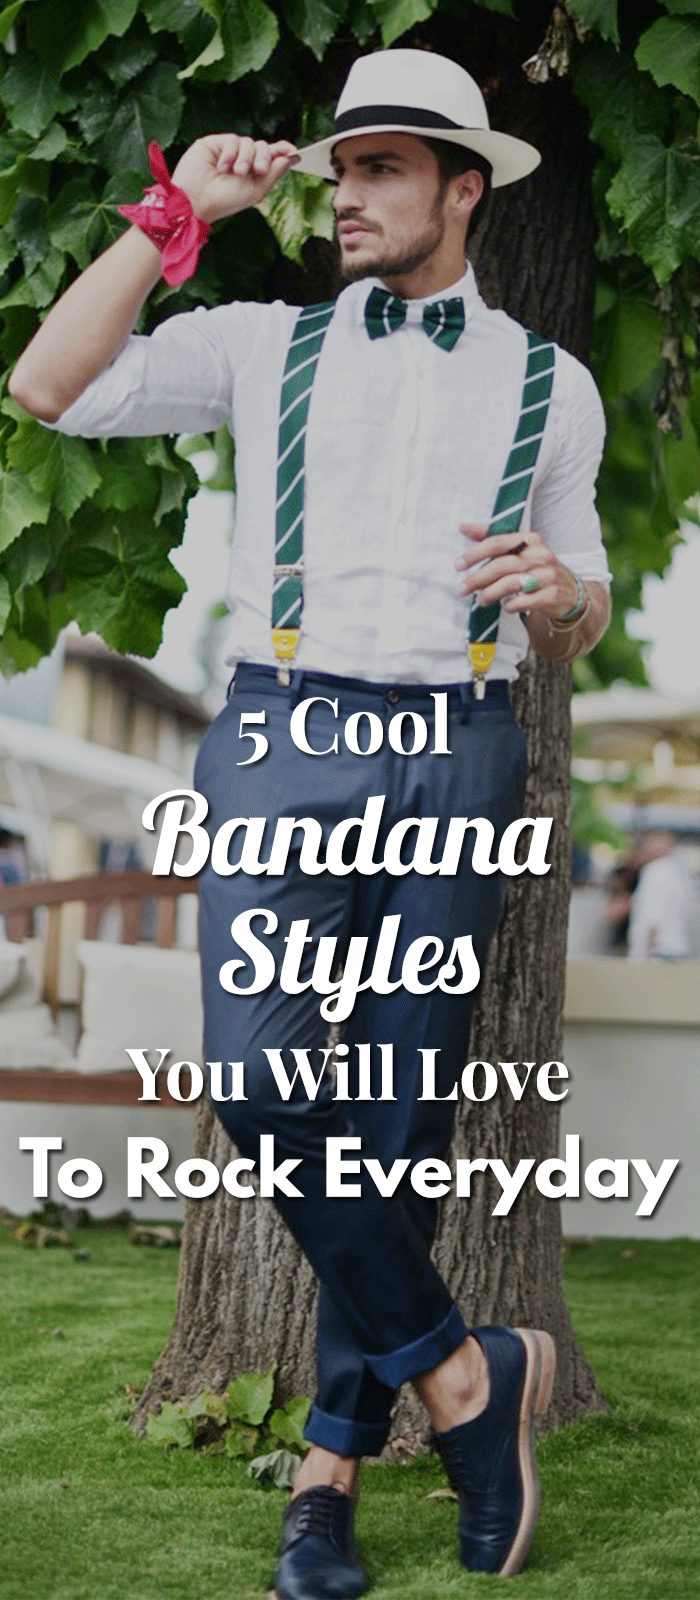 5 Cool Bandana Styles You Will Love To Rock Everyday